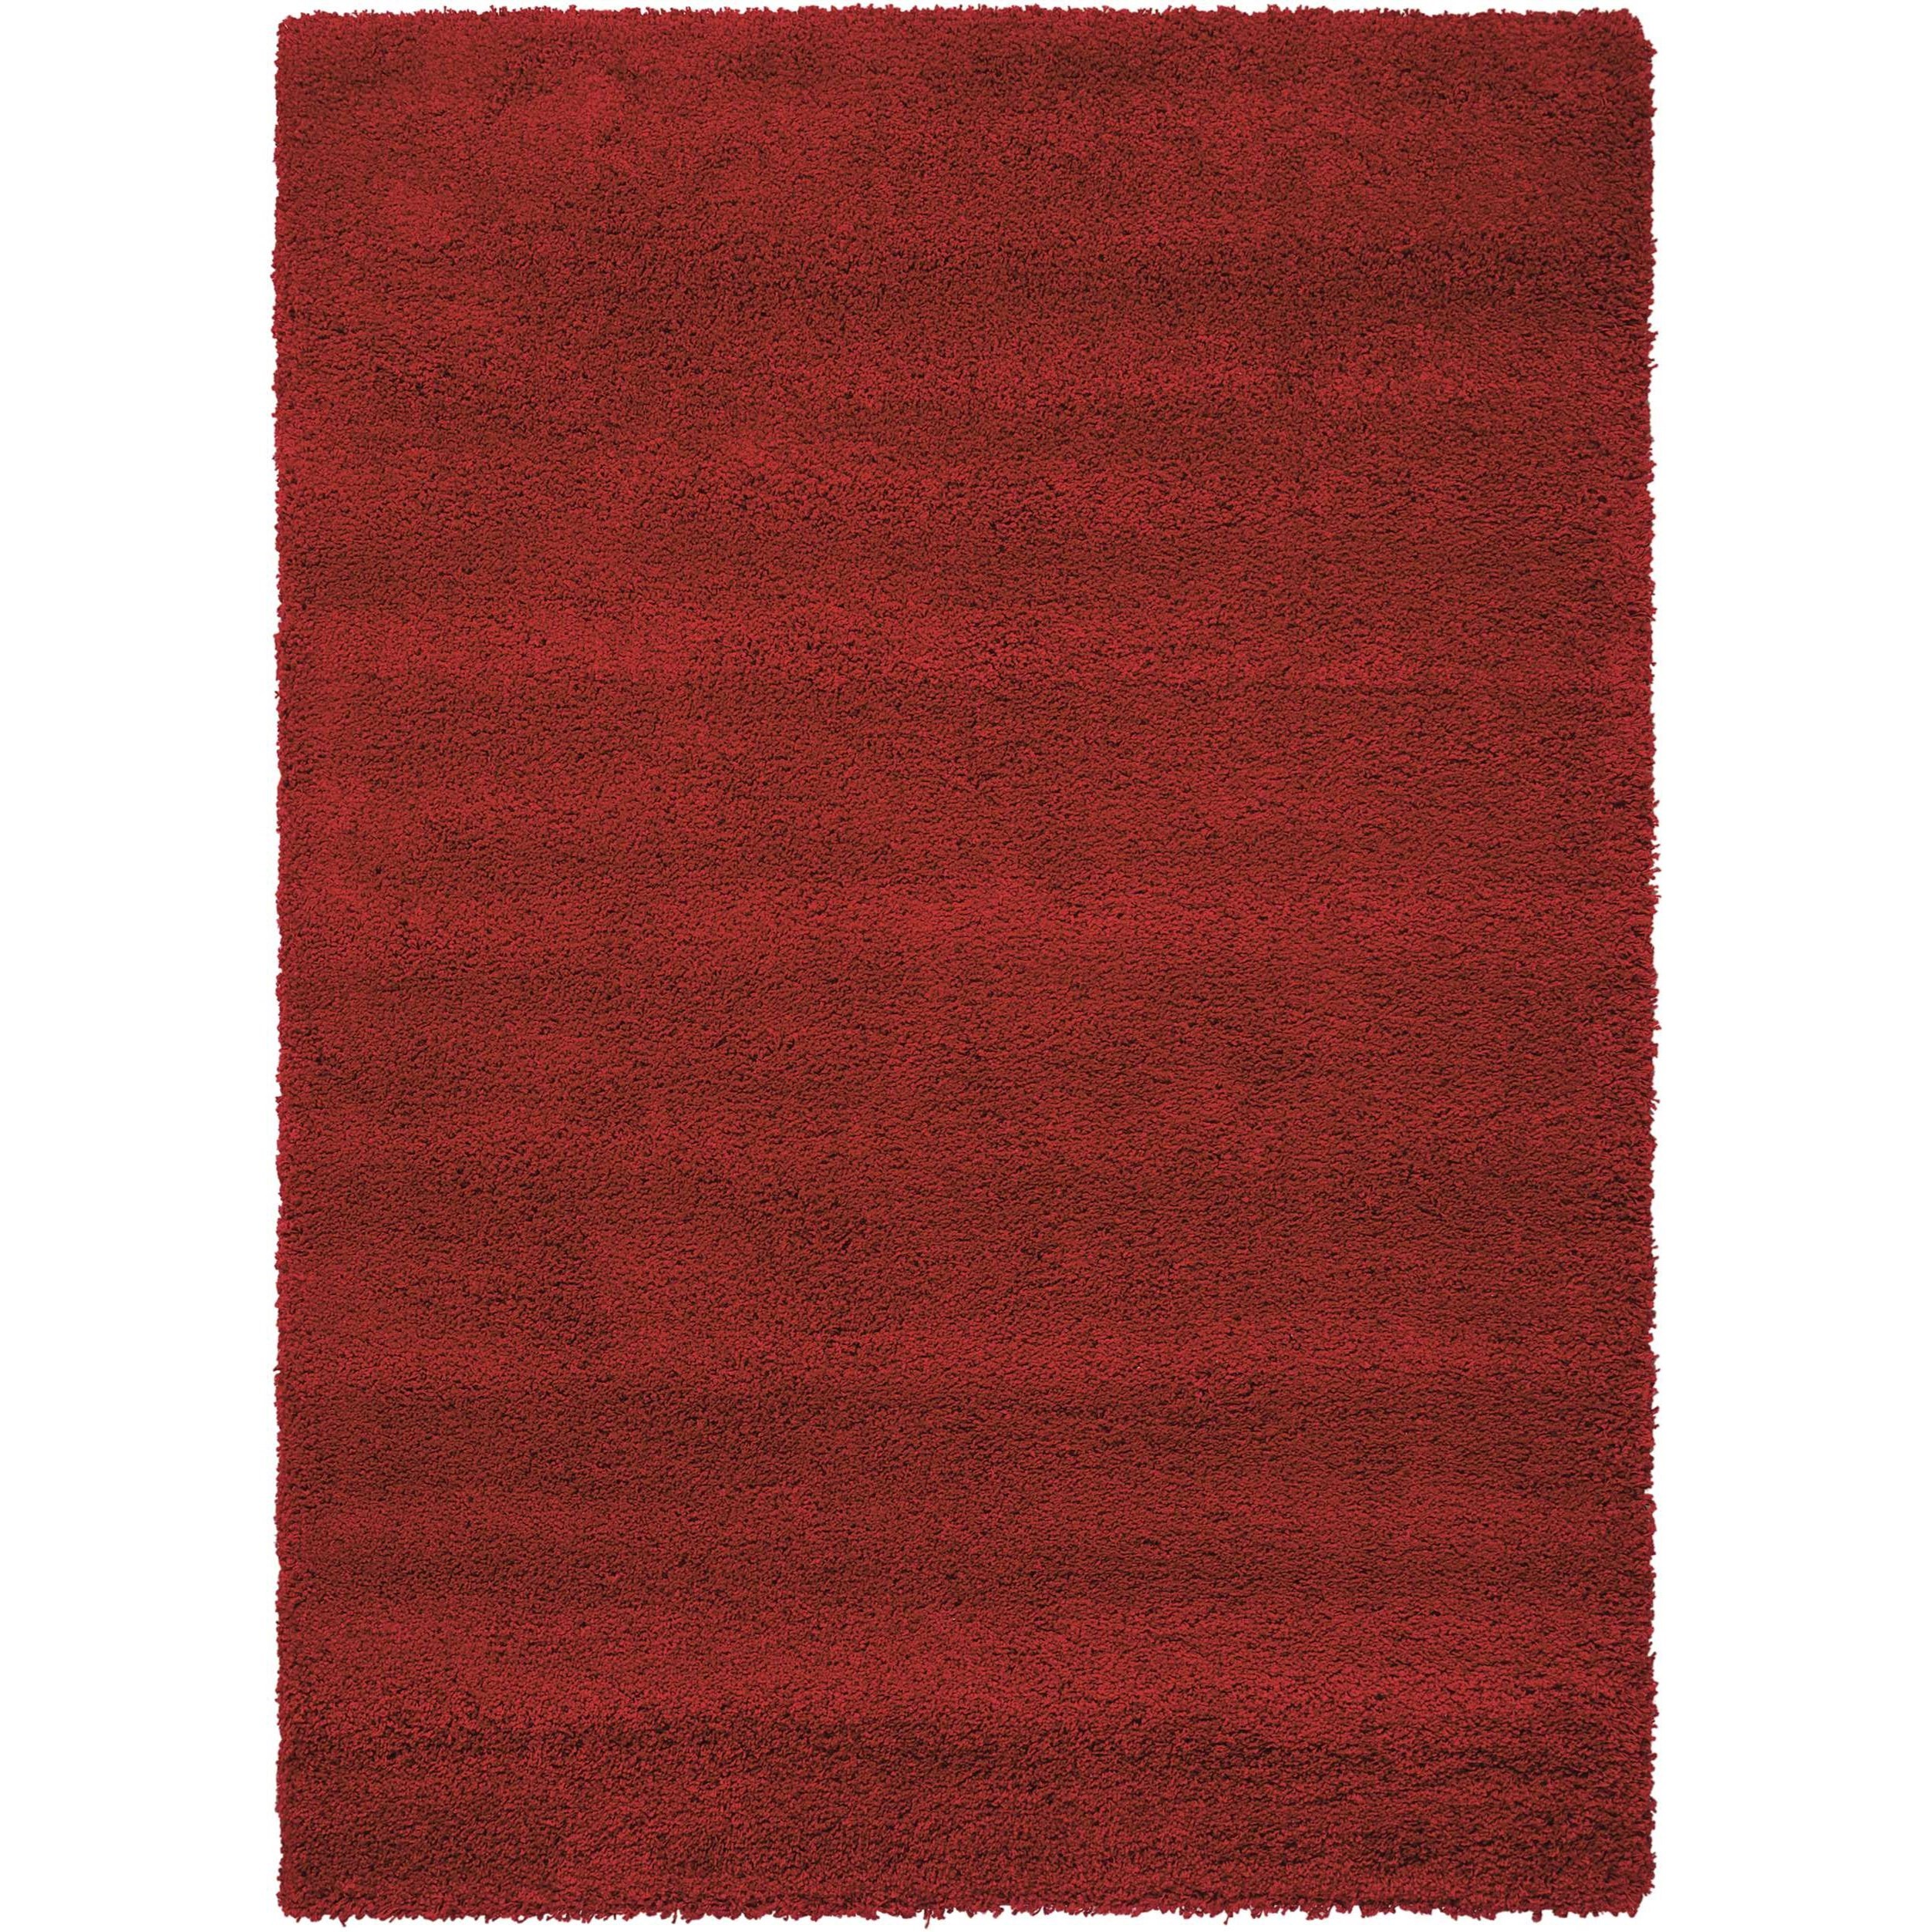 Amore Amore AMOR1 Red 8'x11'   Rug by Nourison at Home Collections Furniture